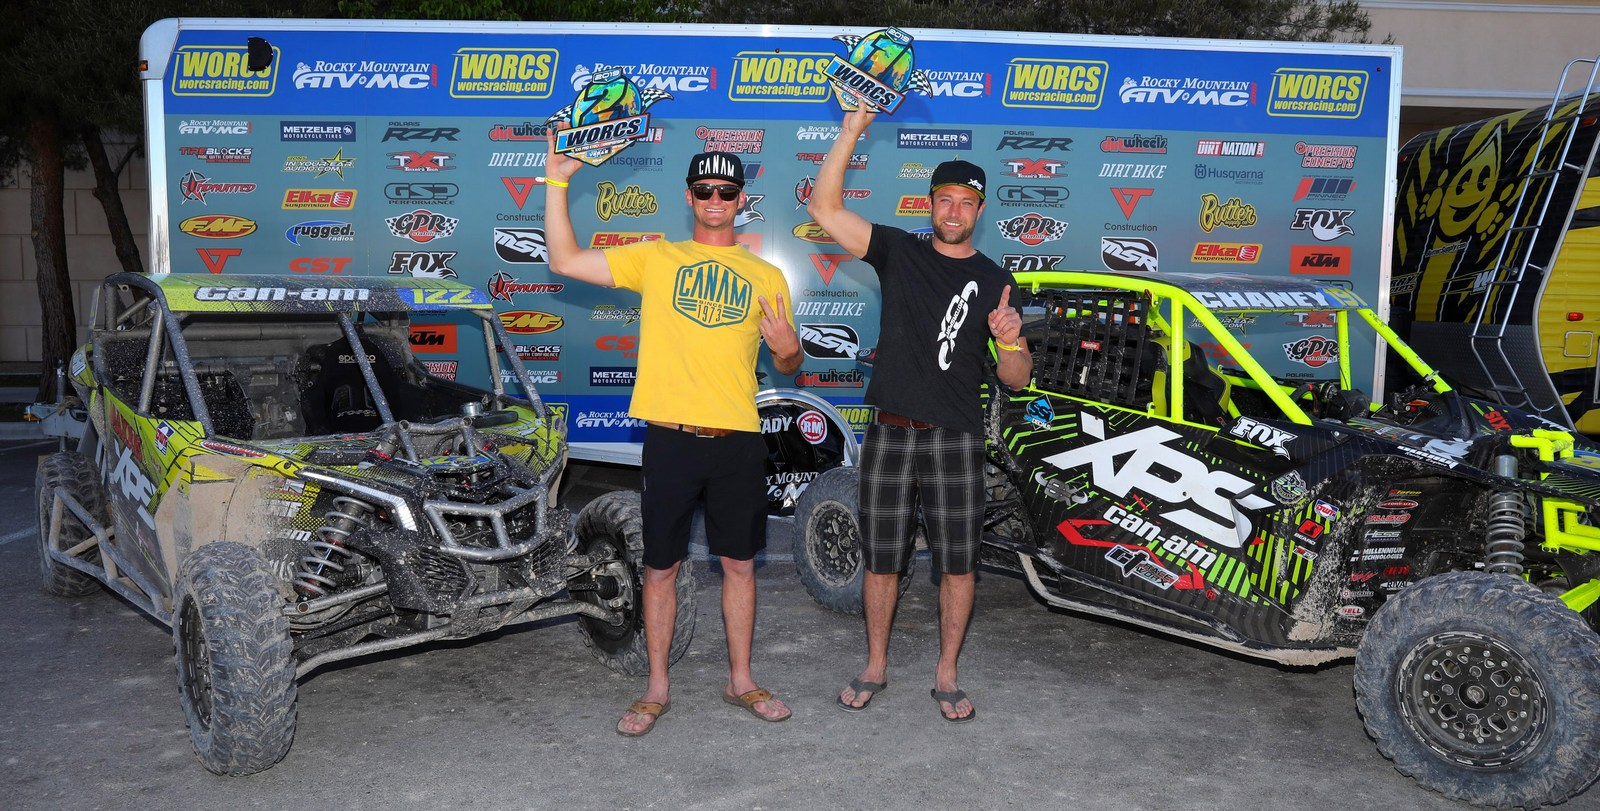 2019-04-podium-sxs-worcs-racing